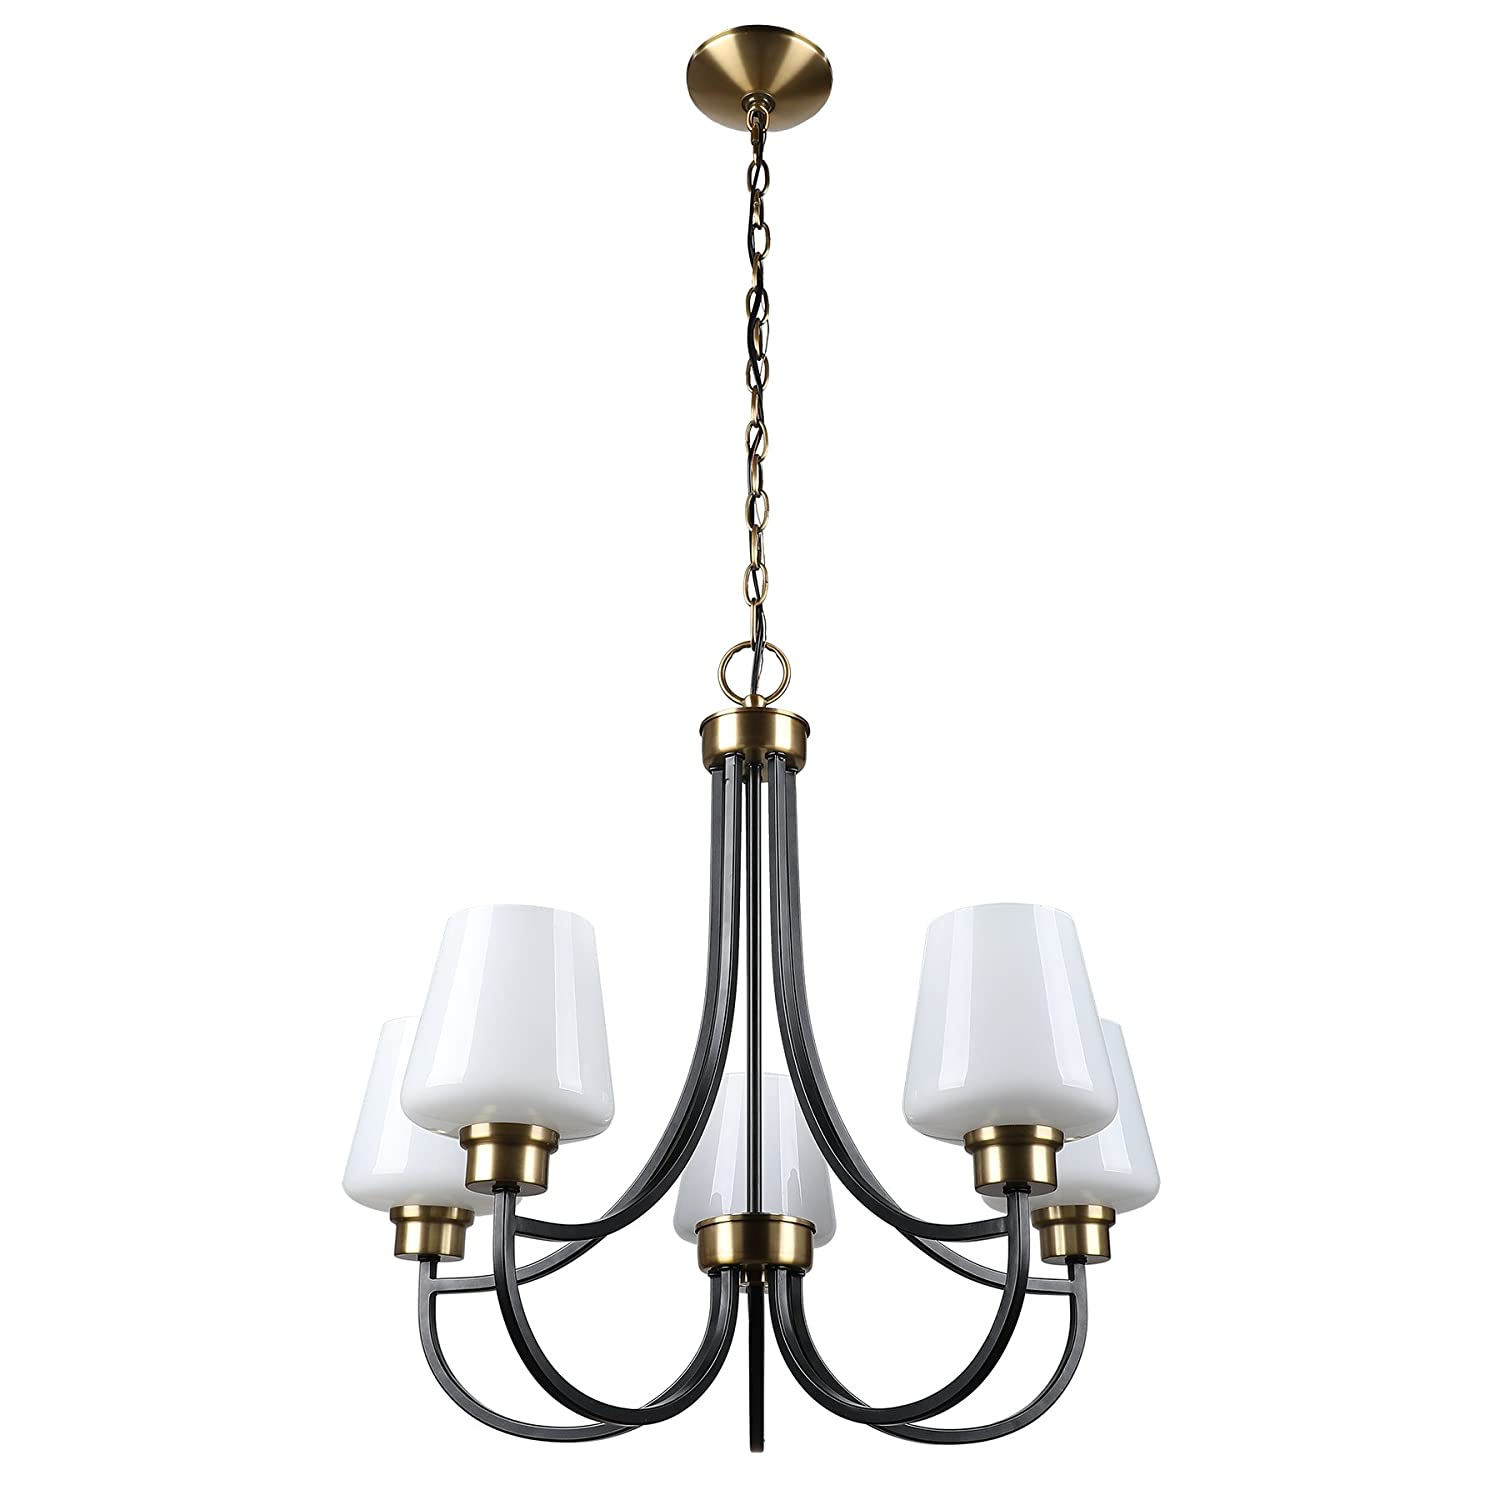 Brass lighting fixtures Black And Gold 5light Antique Brass Chandelier Modern Light Ceiling Lighting Fixtures With Satin Etched Cased Opal Glass Shade For Dining Room Kitchen Living Room Amazoncom 5light Antique Brass Chandelier Modern Light Ceiling Lighting